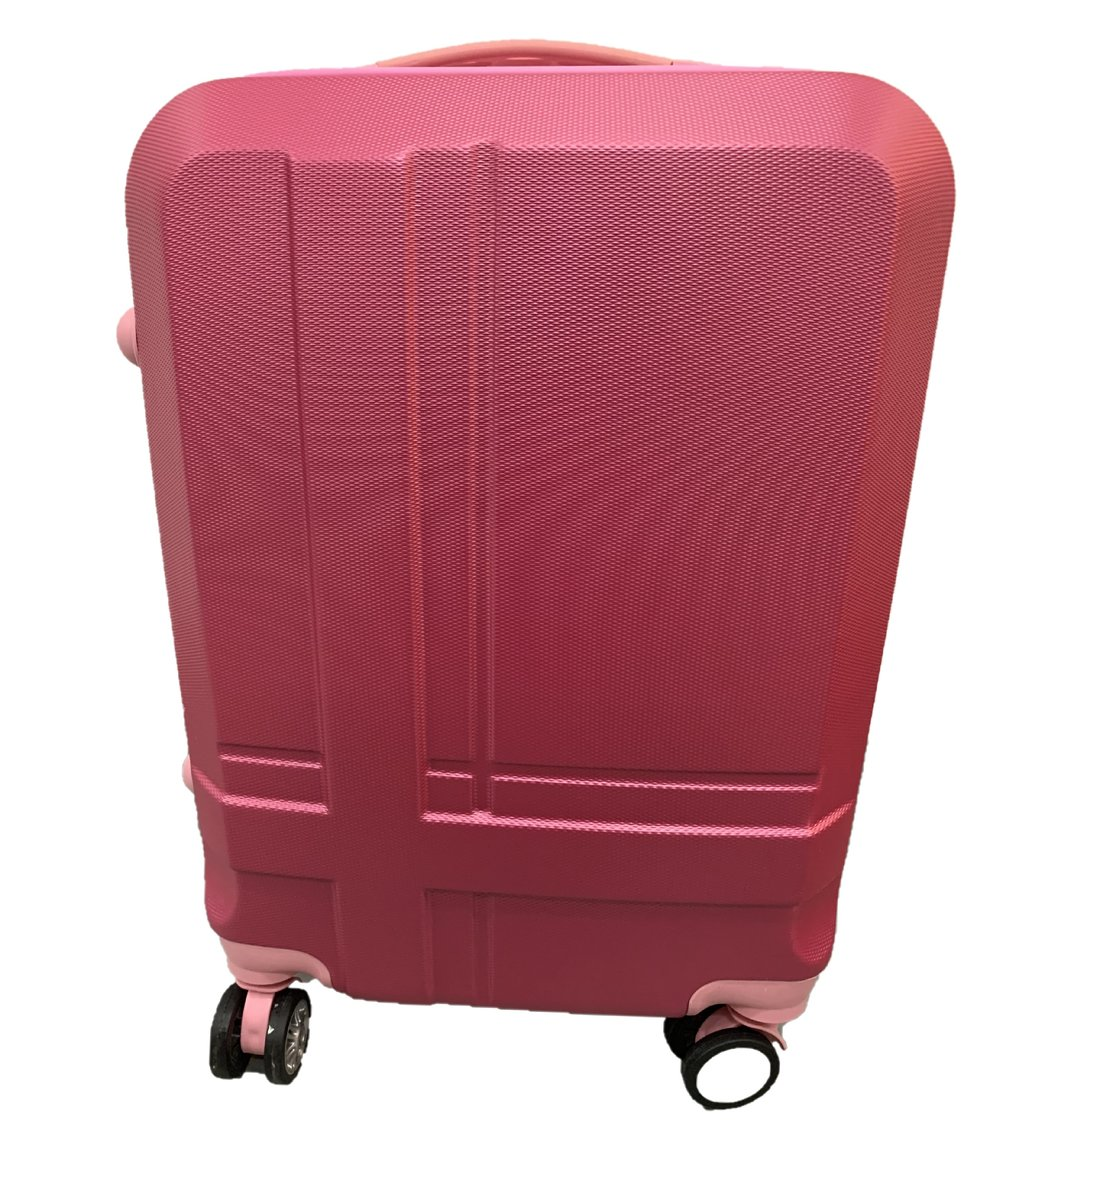 T series 20in impact resistant luggage - Red 530-20RD